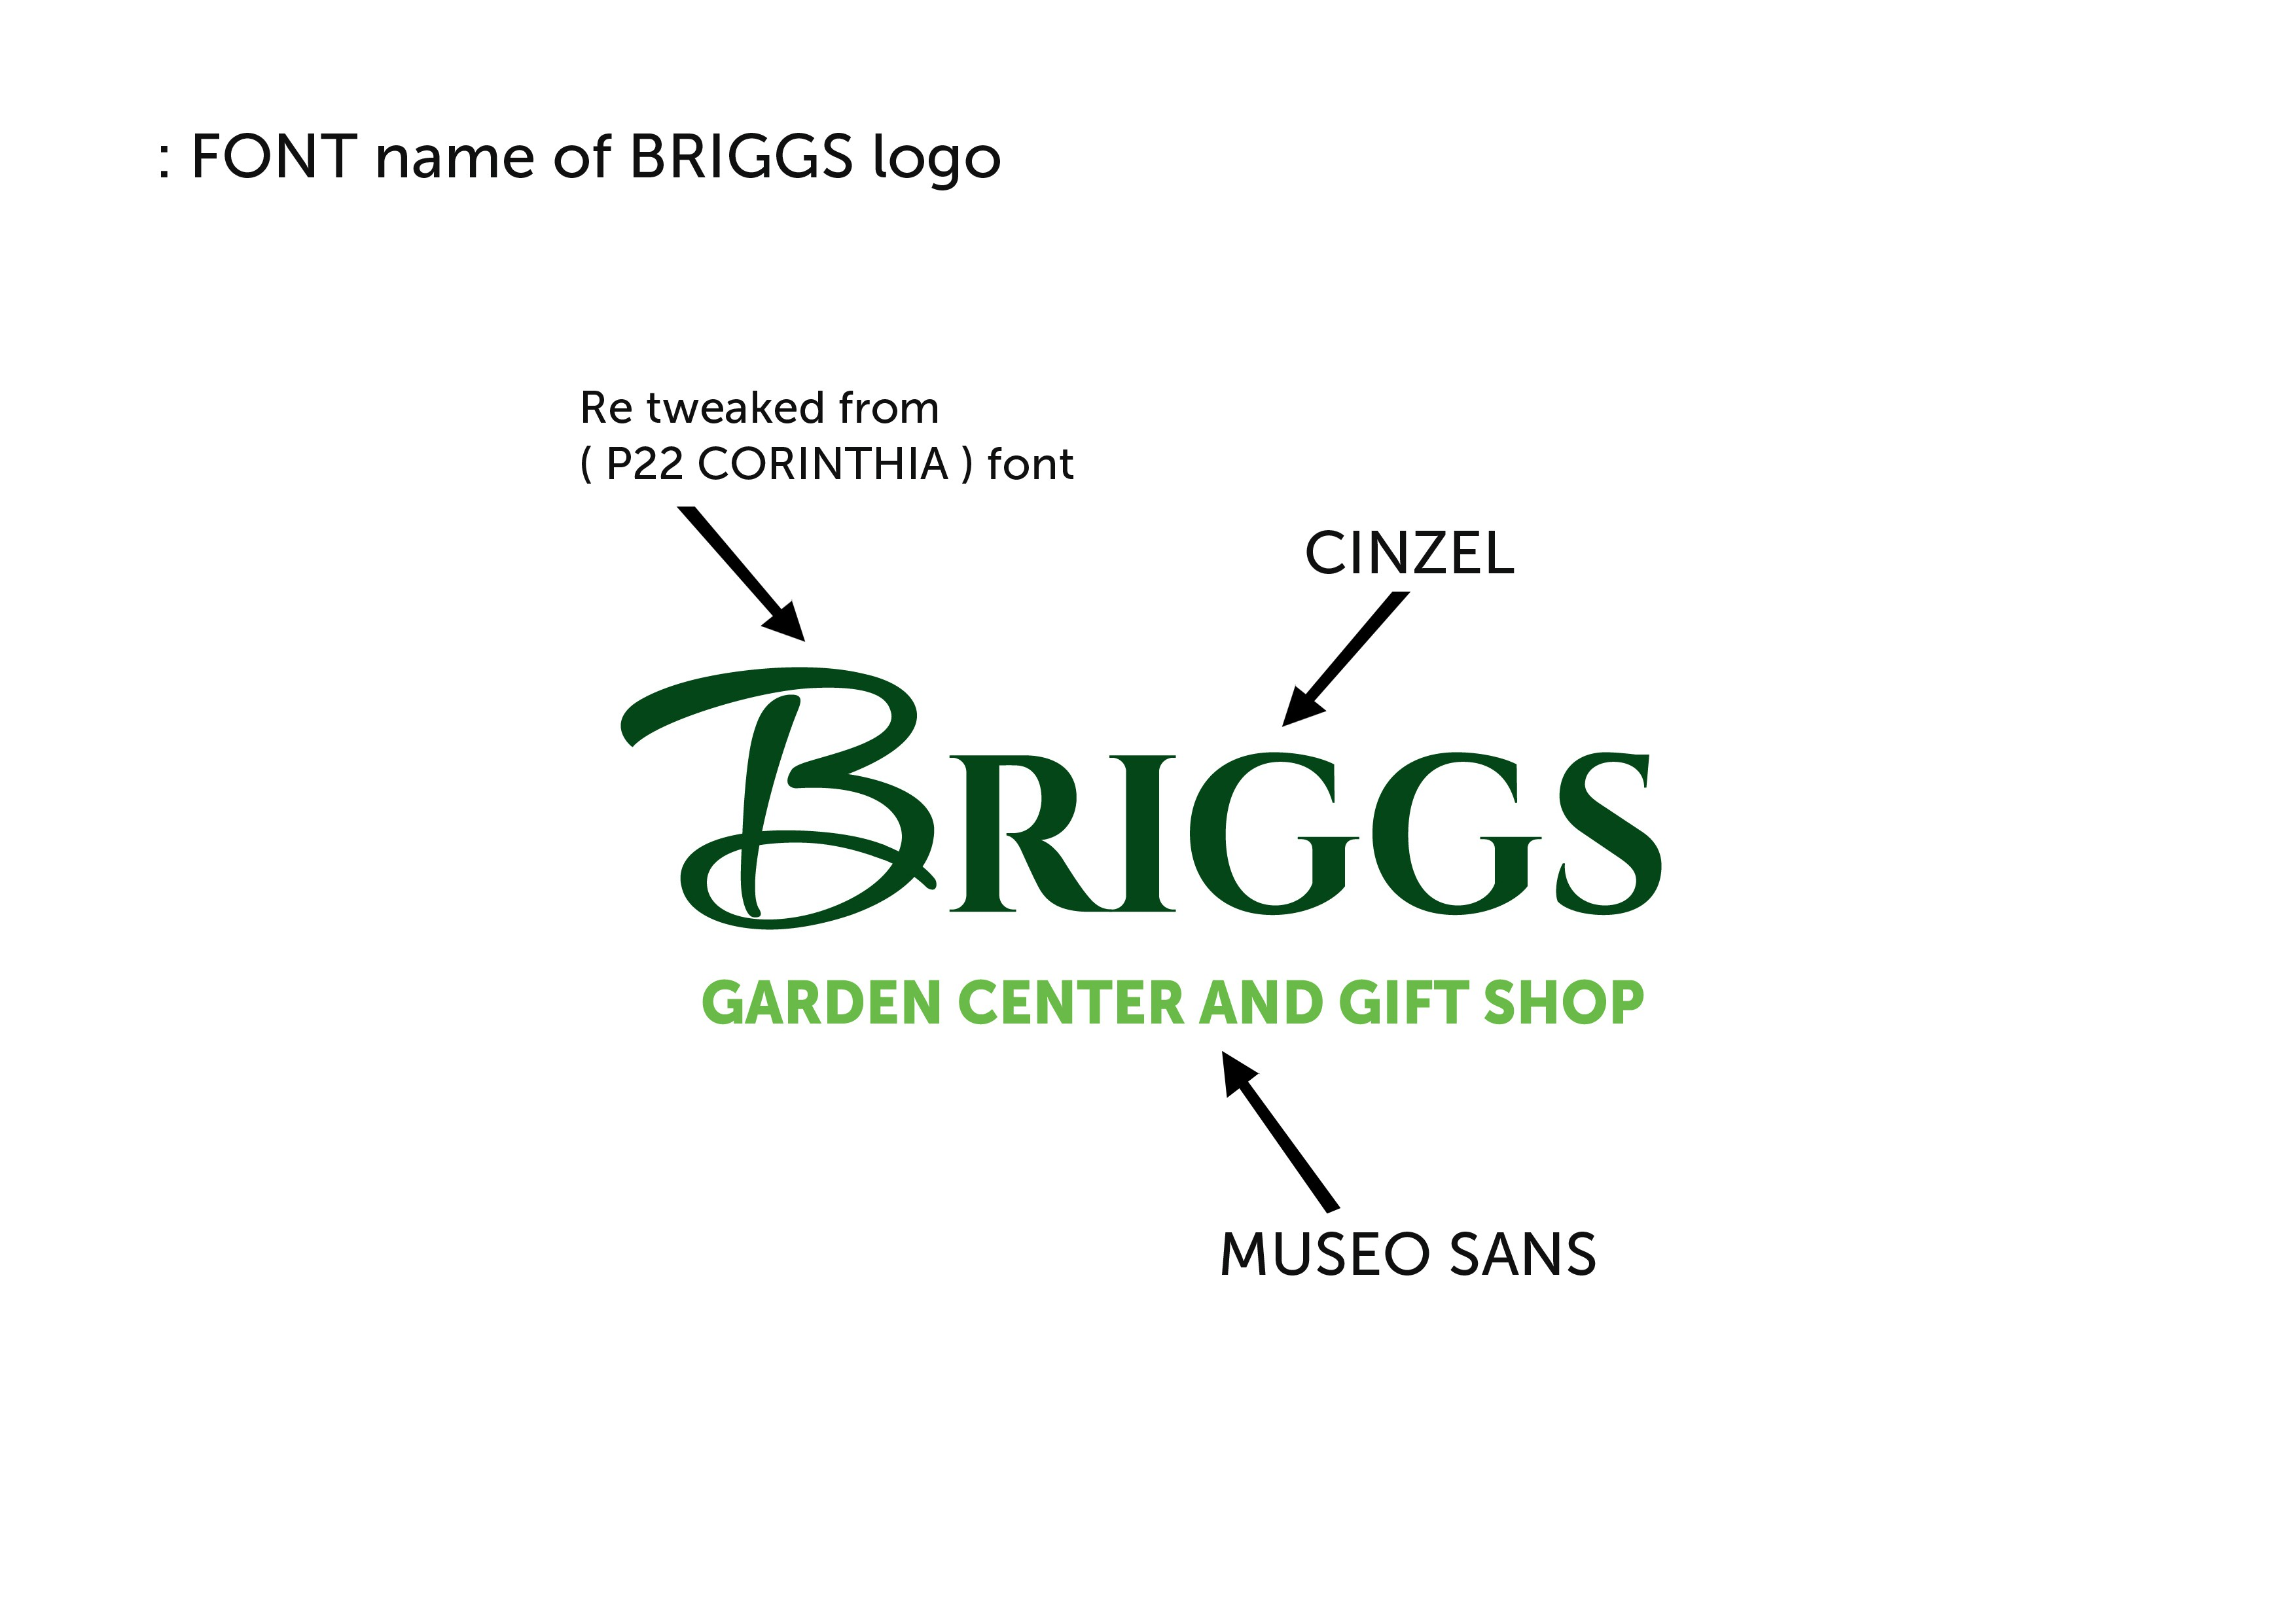 Garden center and gift shop needs a powerful, enticing logo for new owners taking over a well-known business.